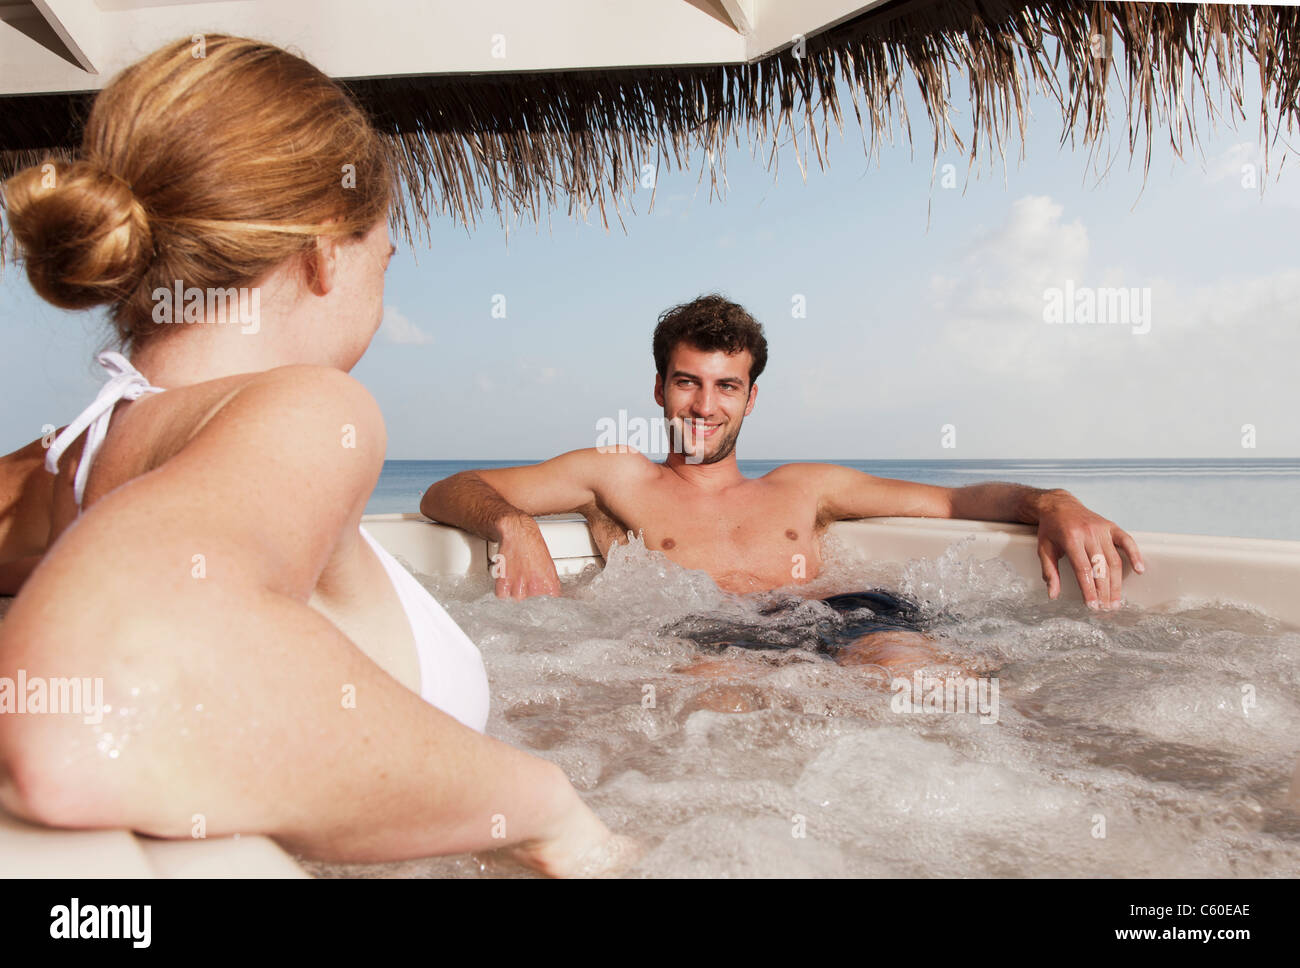 Couple sitting in hot tub - Stock Image